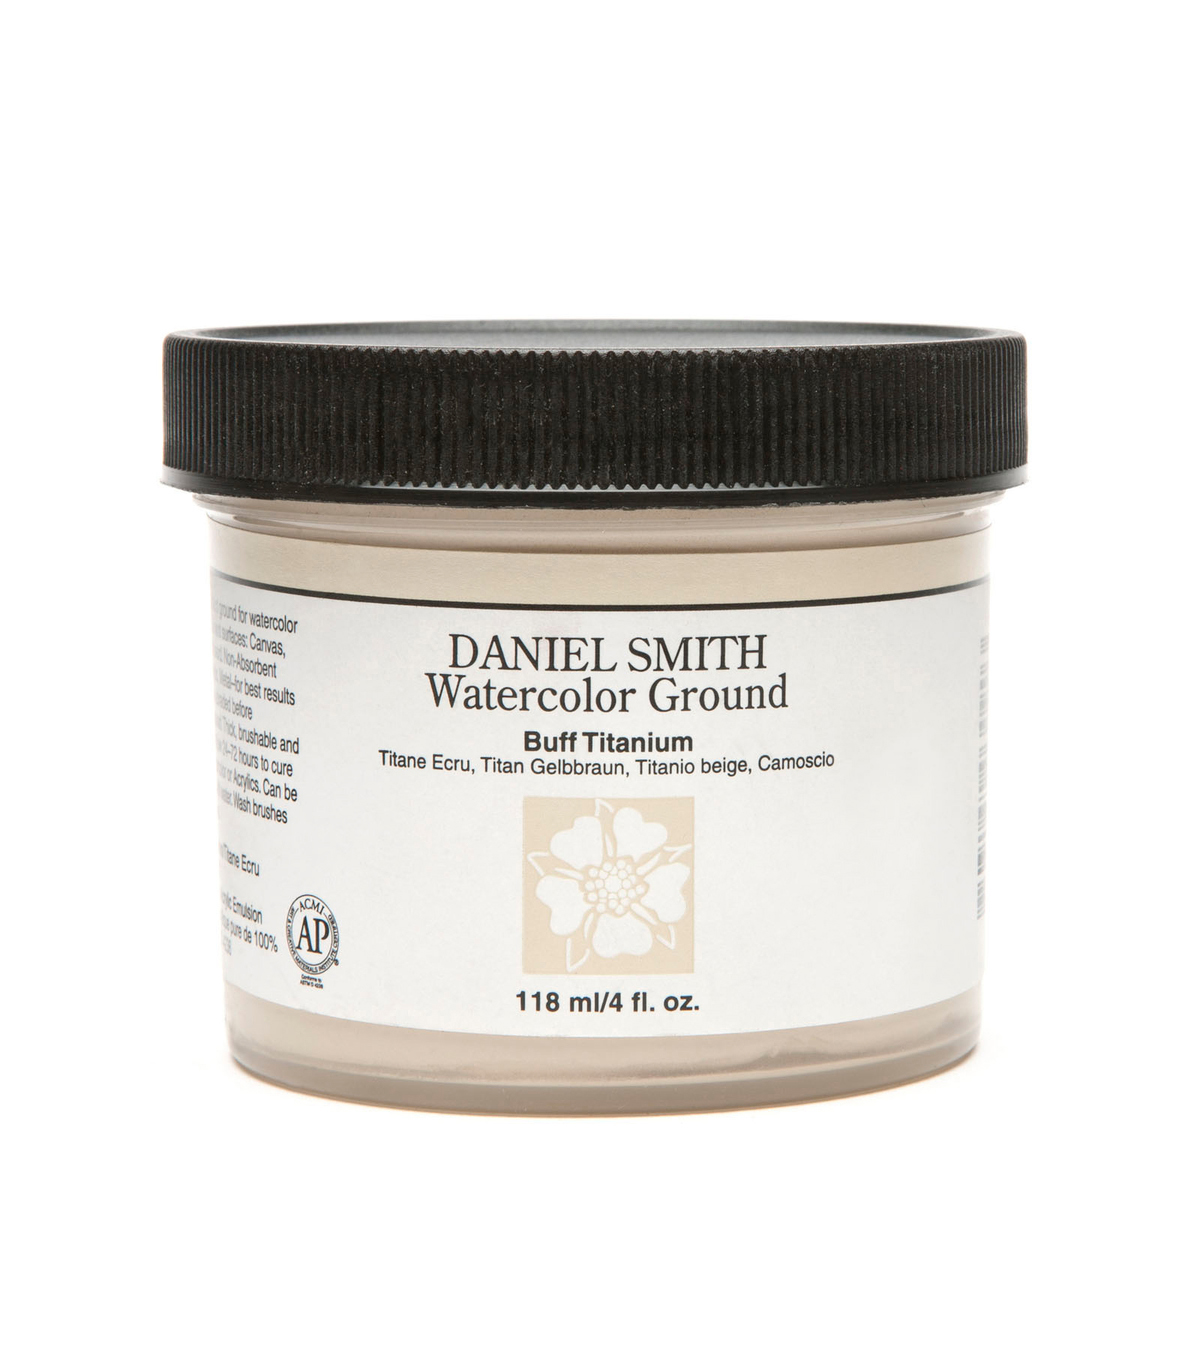 Daniel Smith 4 fl. oz. Watercolor Ground, White Titanium Buff